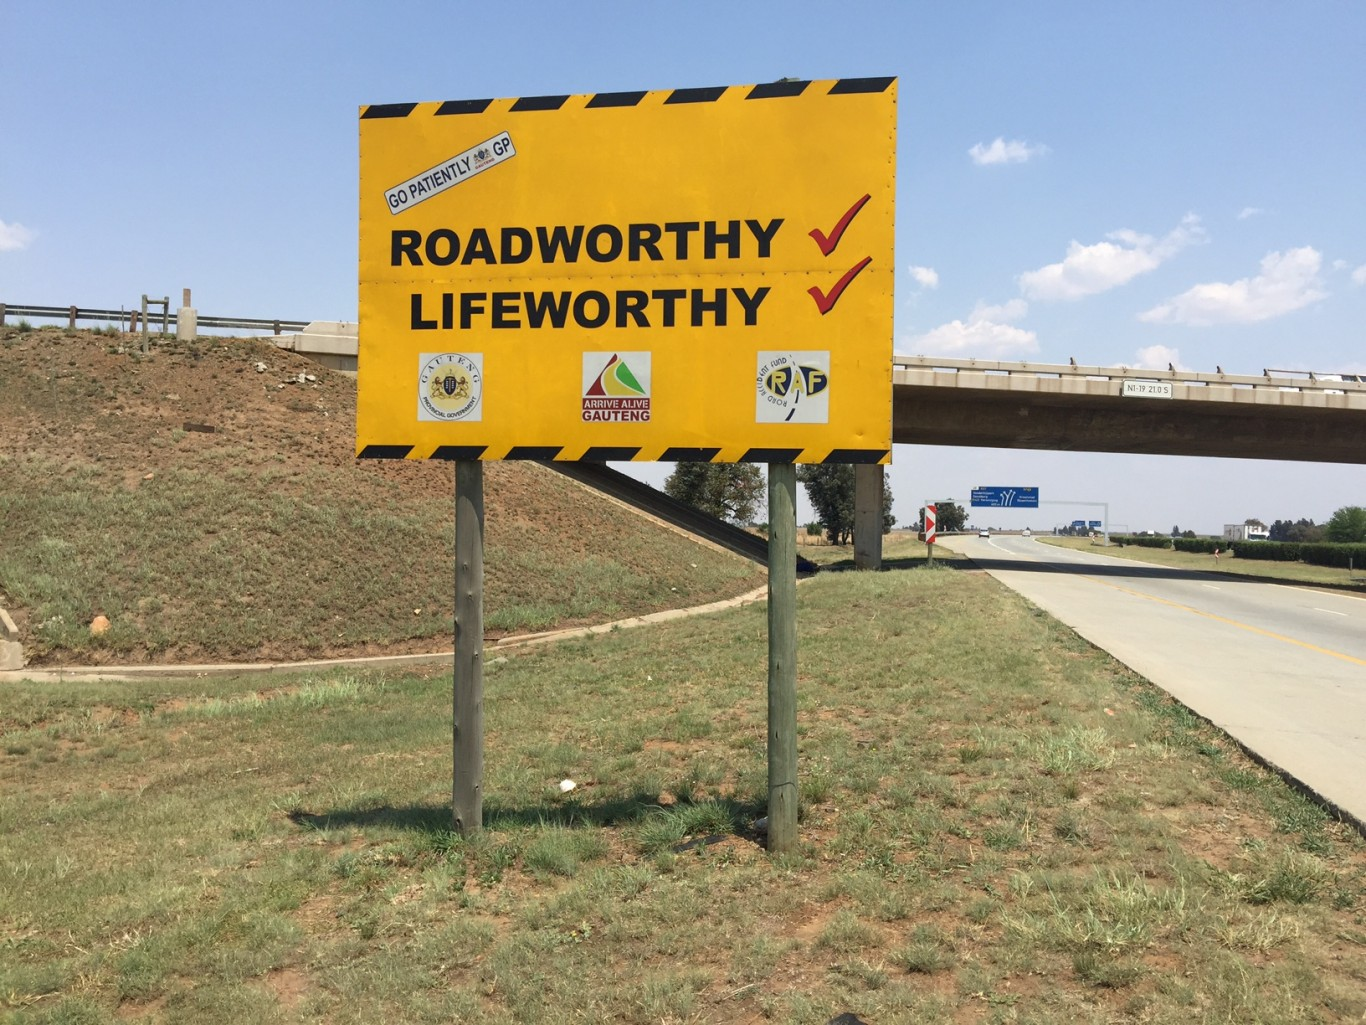 Roadworthiness or drunk driving?